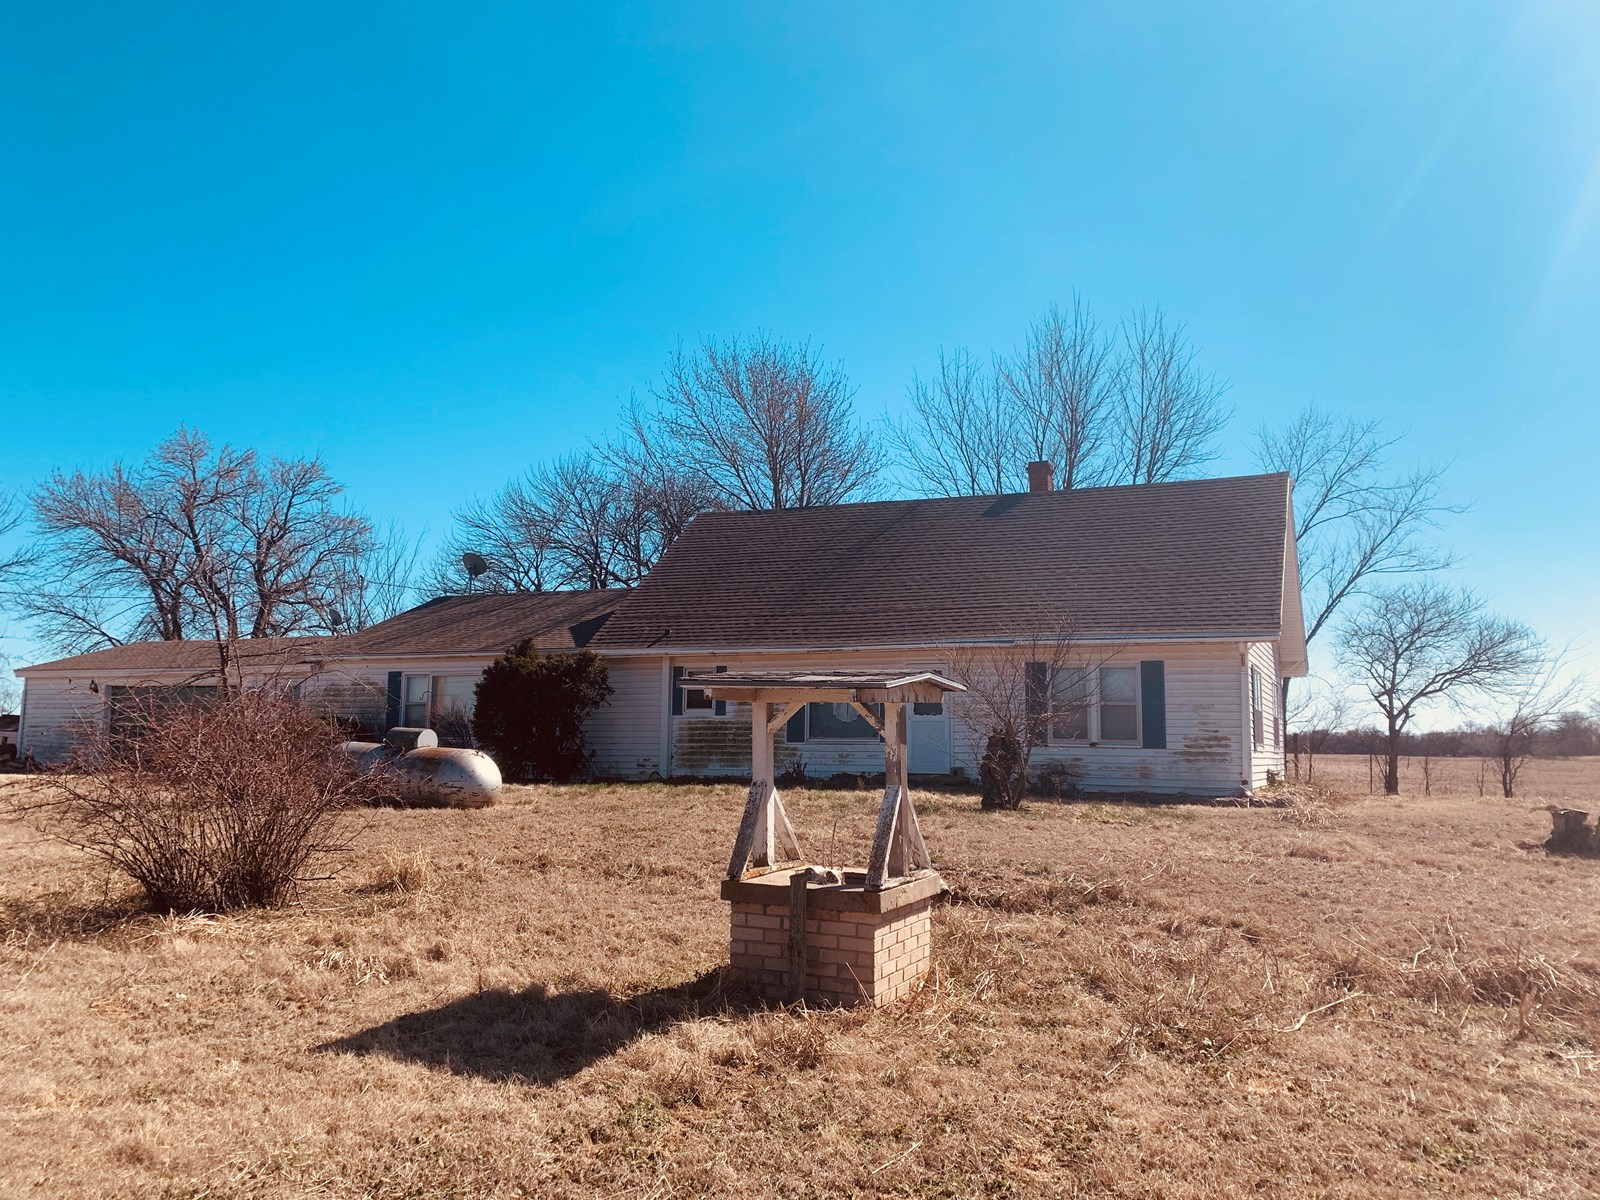 NORTH CENTRAL OKLAHOMA COUNTRY HOME FOR SALE TONKAWA LAMONT